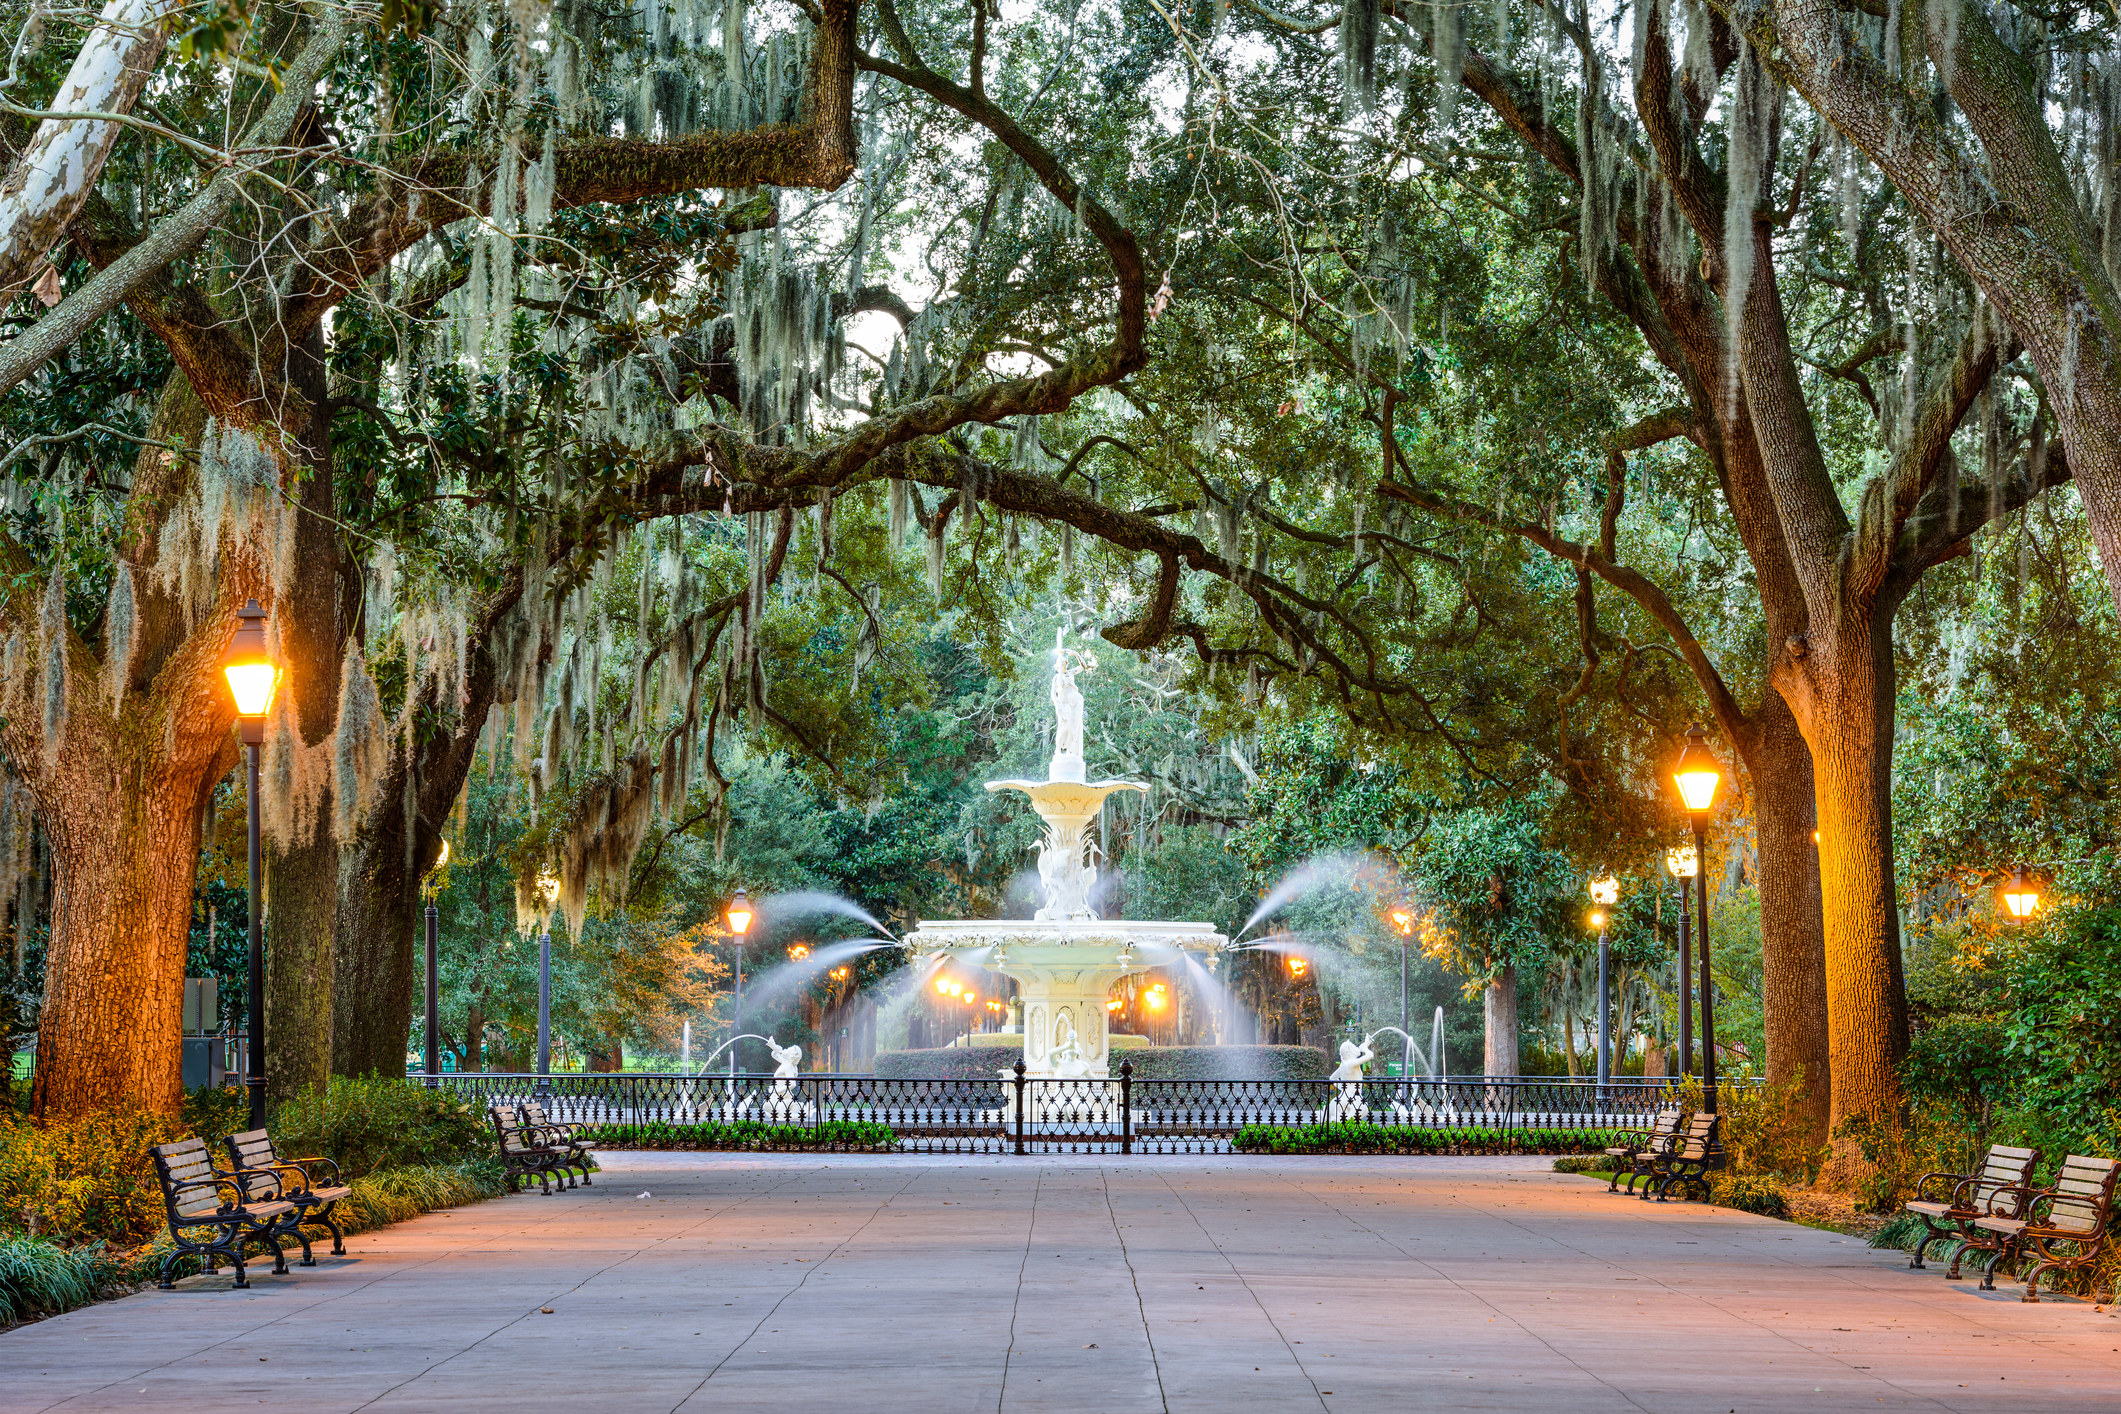 Fountain in a park in Savannah surrounded by trees covered in hanging moss